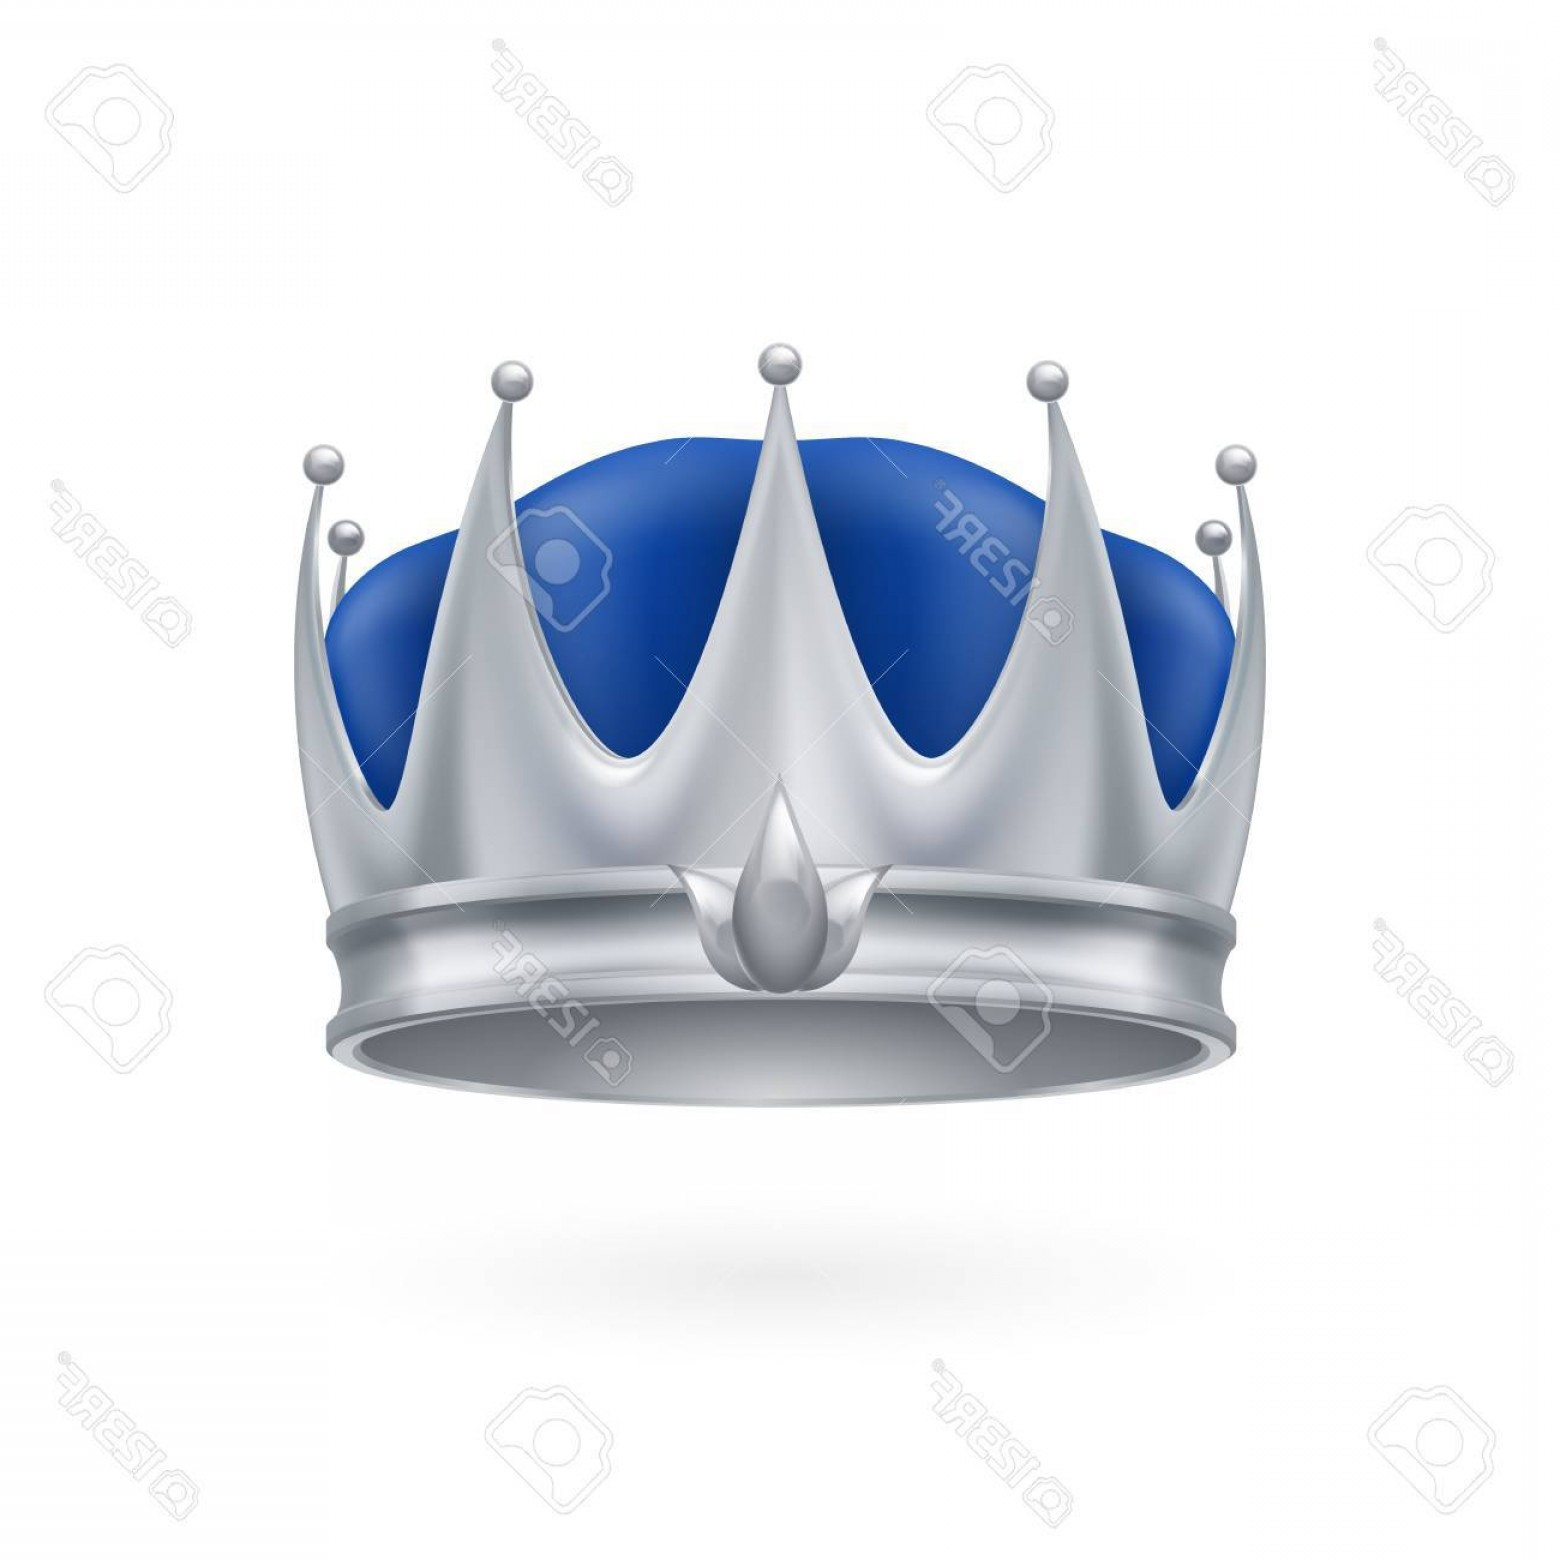 Silver Prince Vector: Photostock Vector Royal Silver Crown Isolated On A White Background For Design